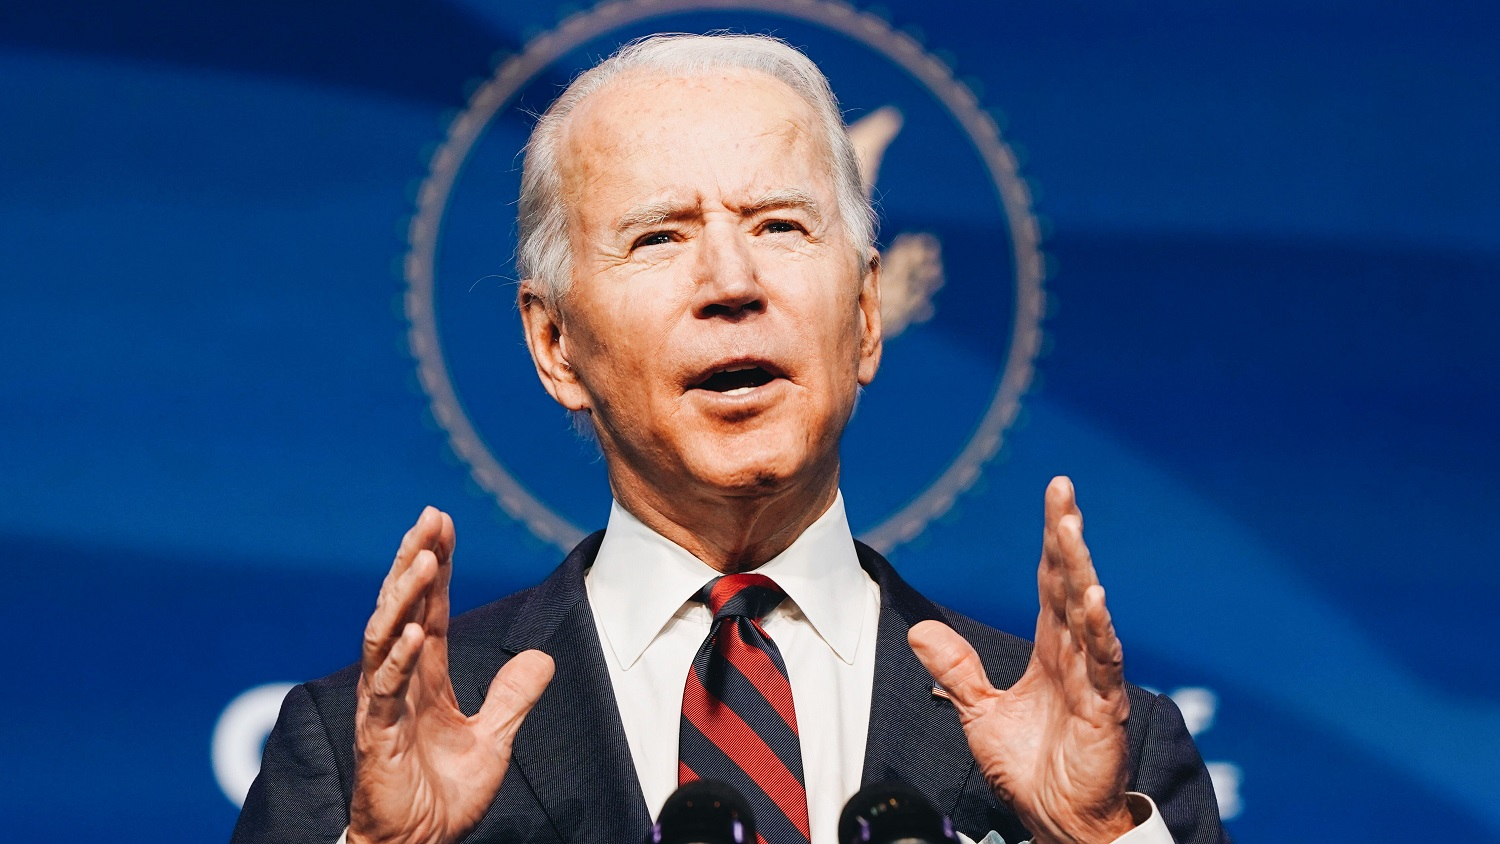 Biden Commits to Cutting U.S. Emissions In Half by 2030